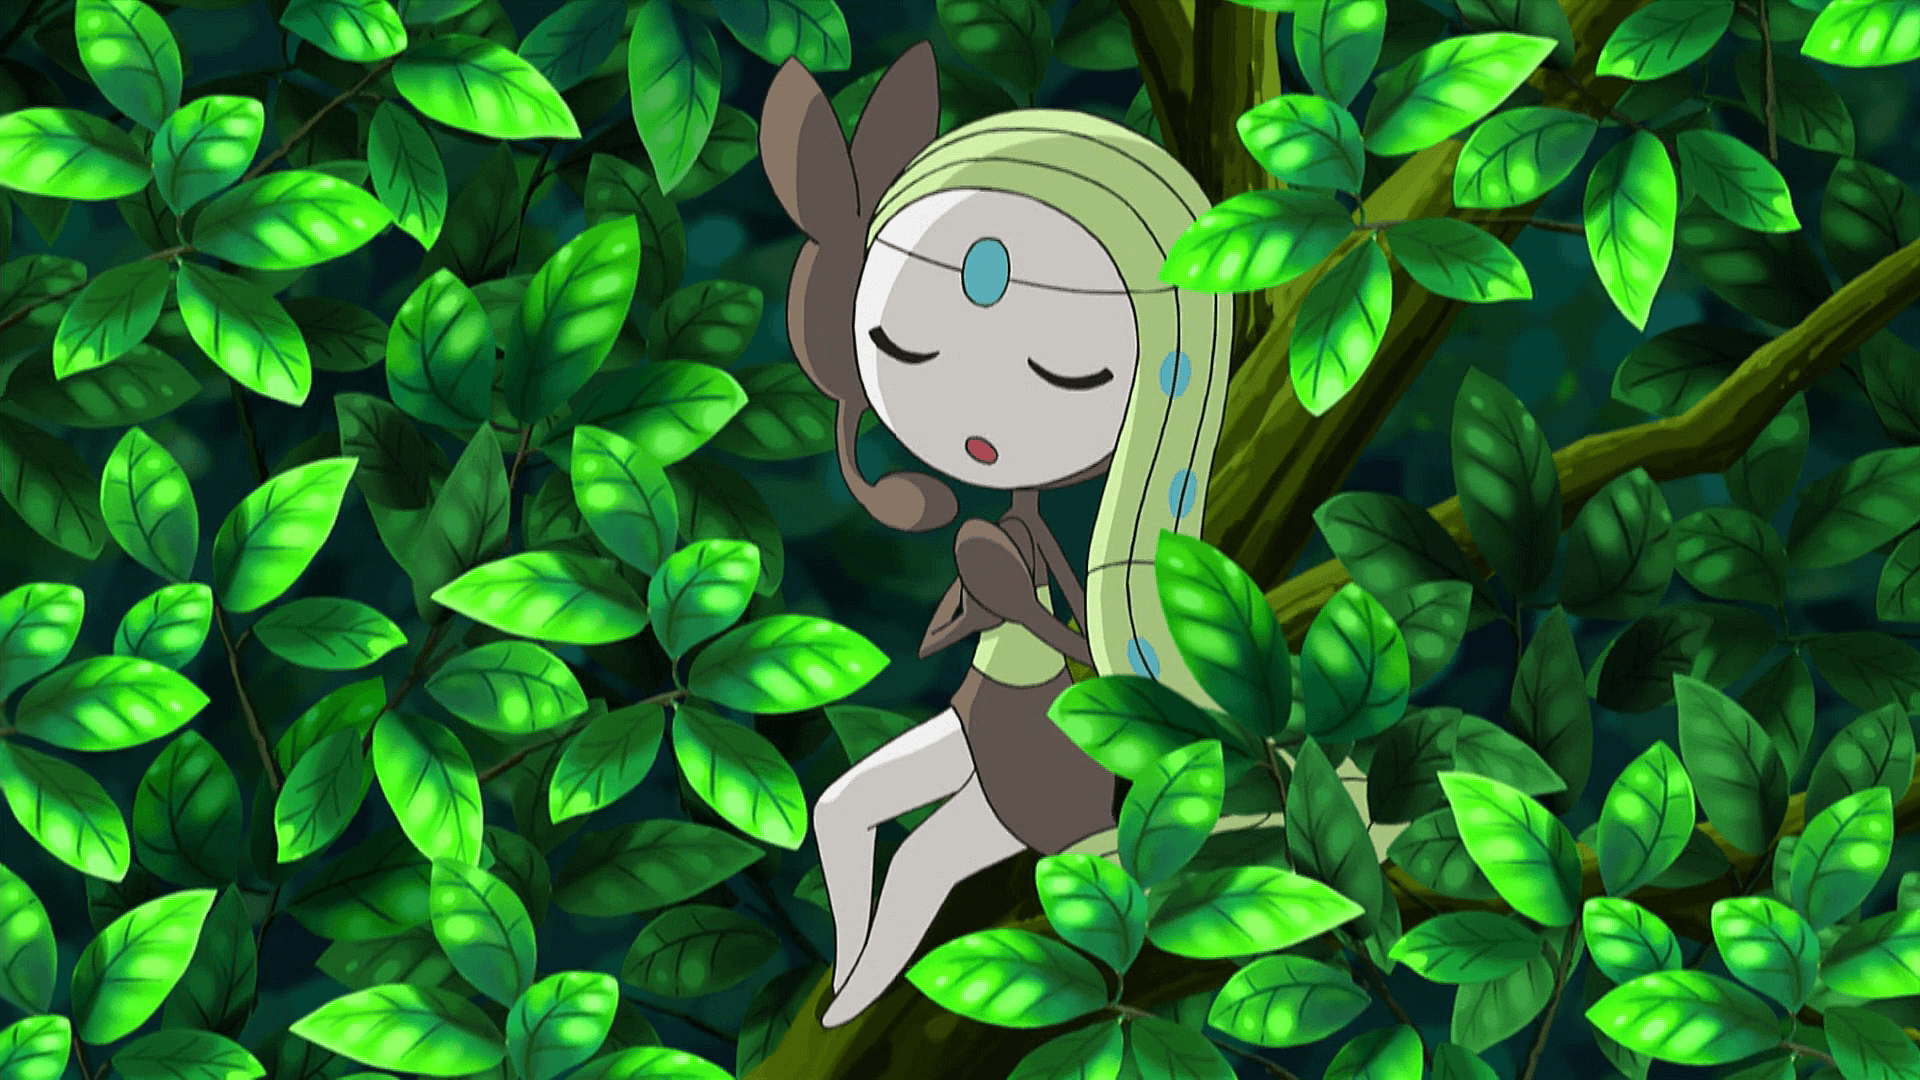 BW087: All for the Love of Meloetta! | Pokémon Wiki | FANDOM powered ...